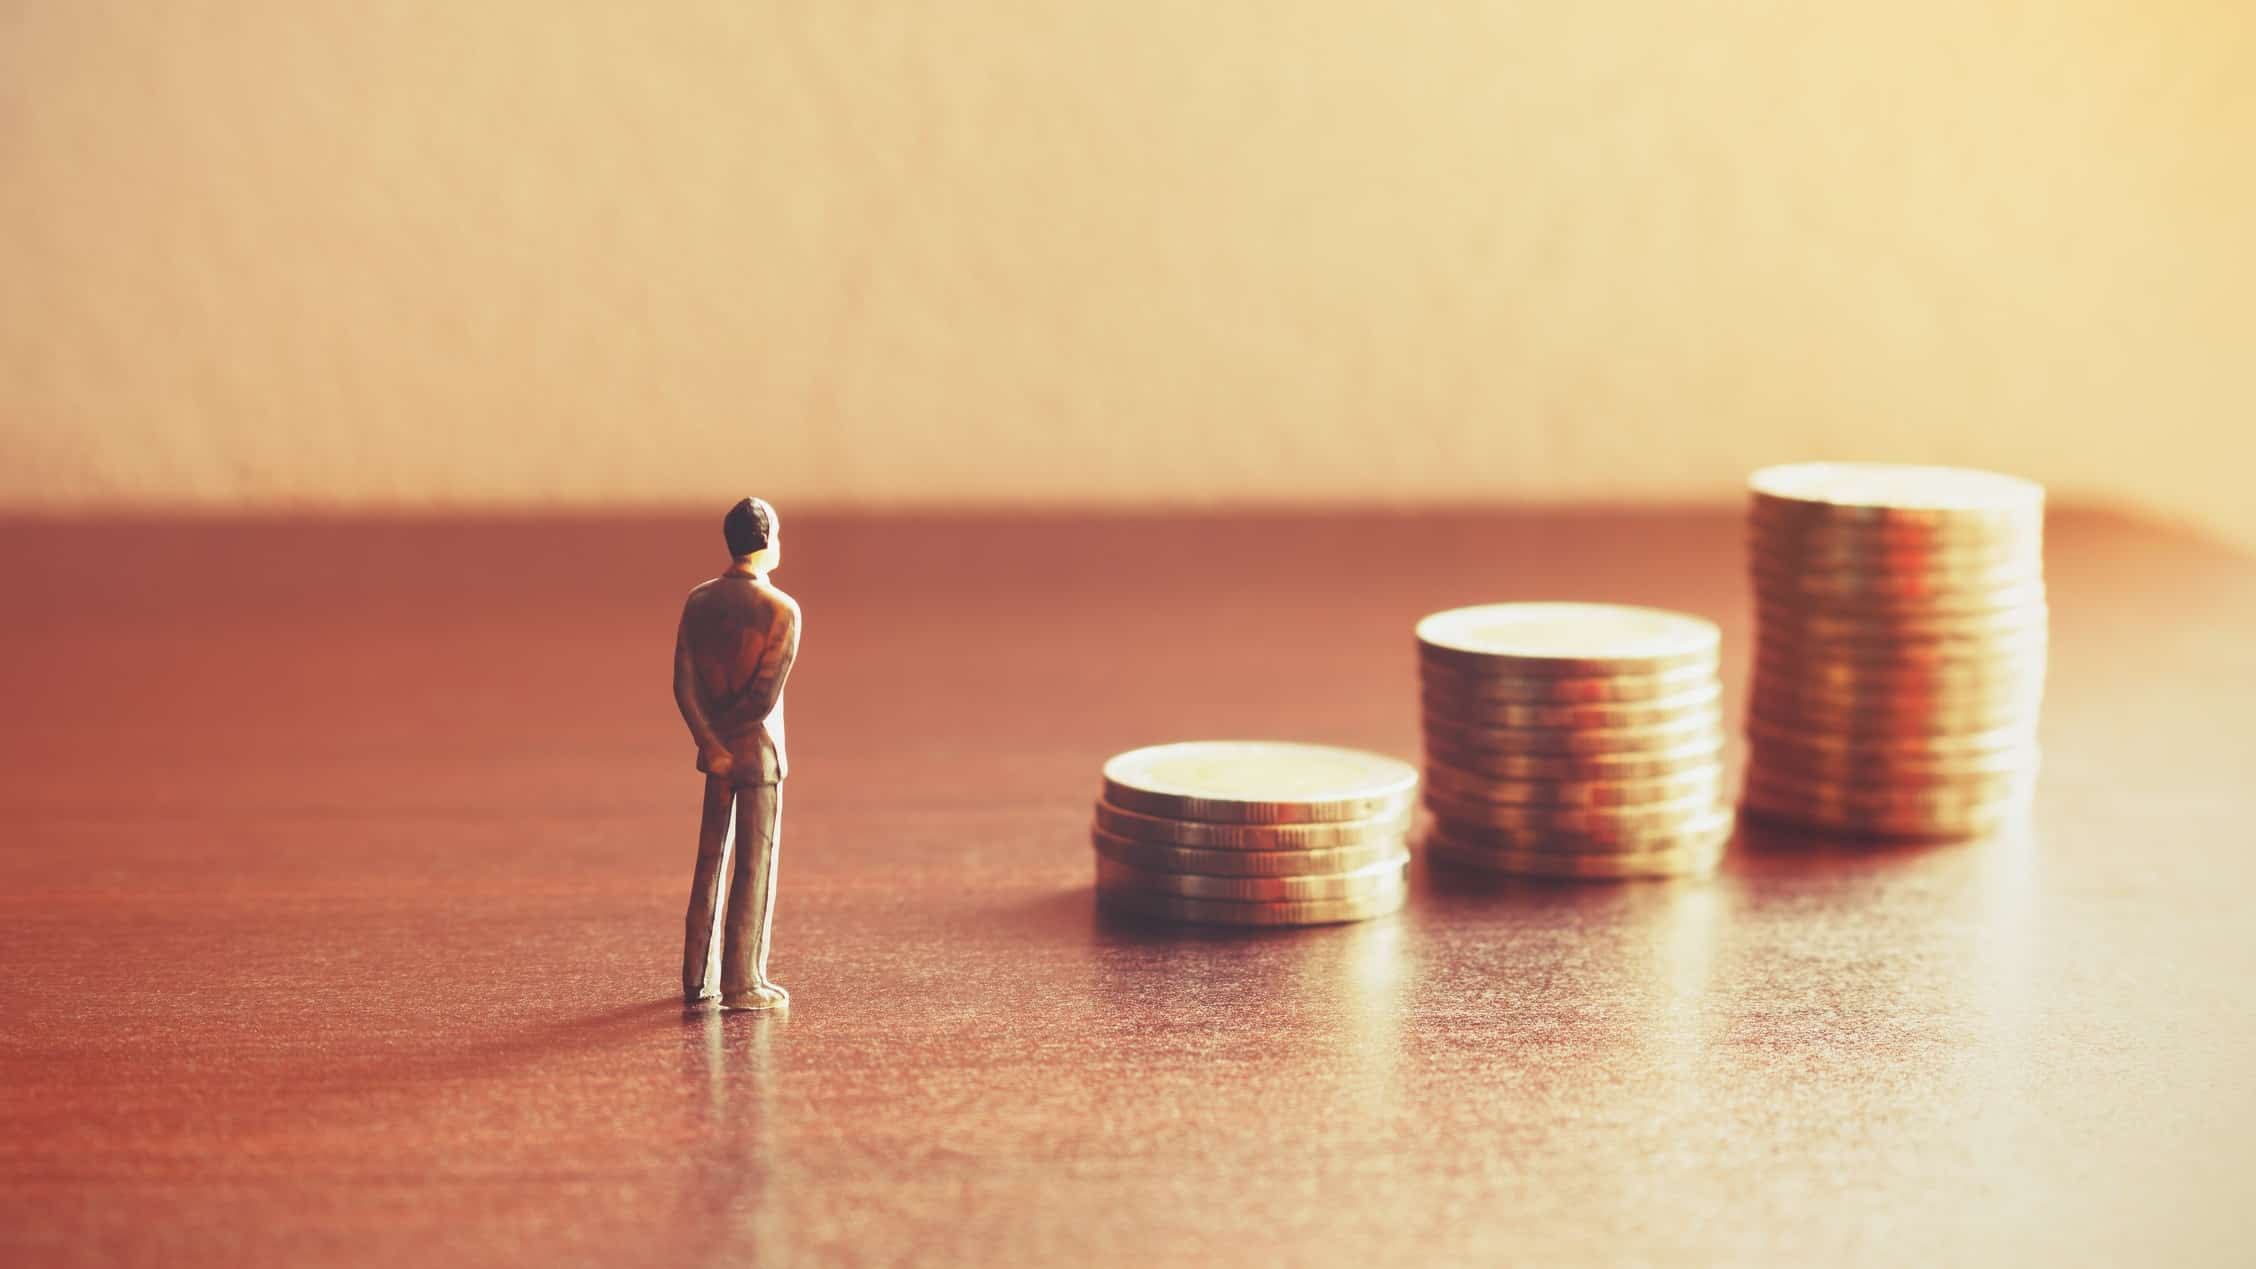 miniature figure of man standing in front of piles of coins